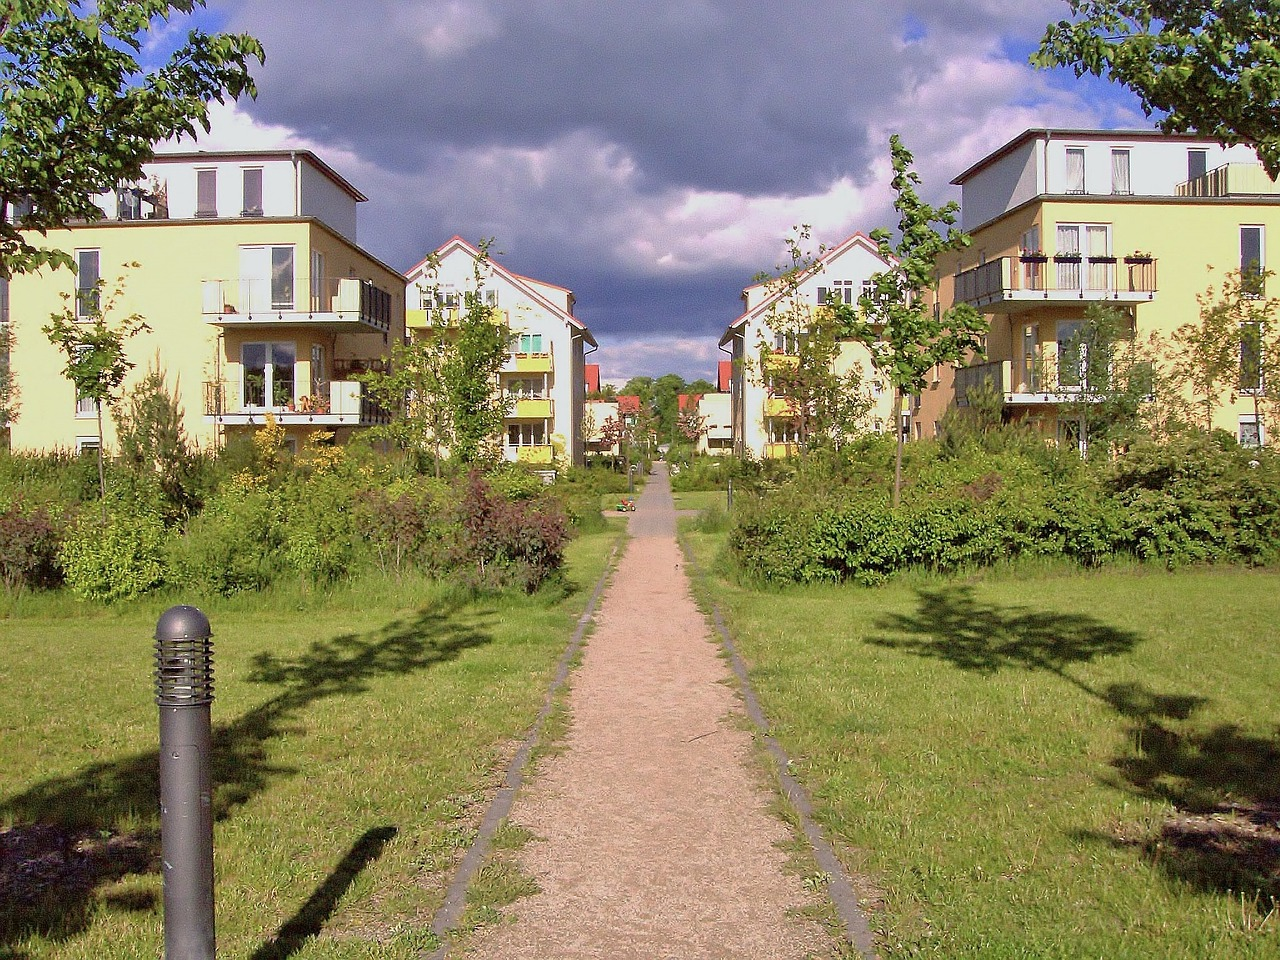 residential-complex-660901_1280.jpg